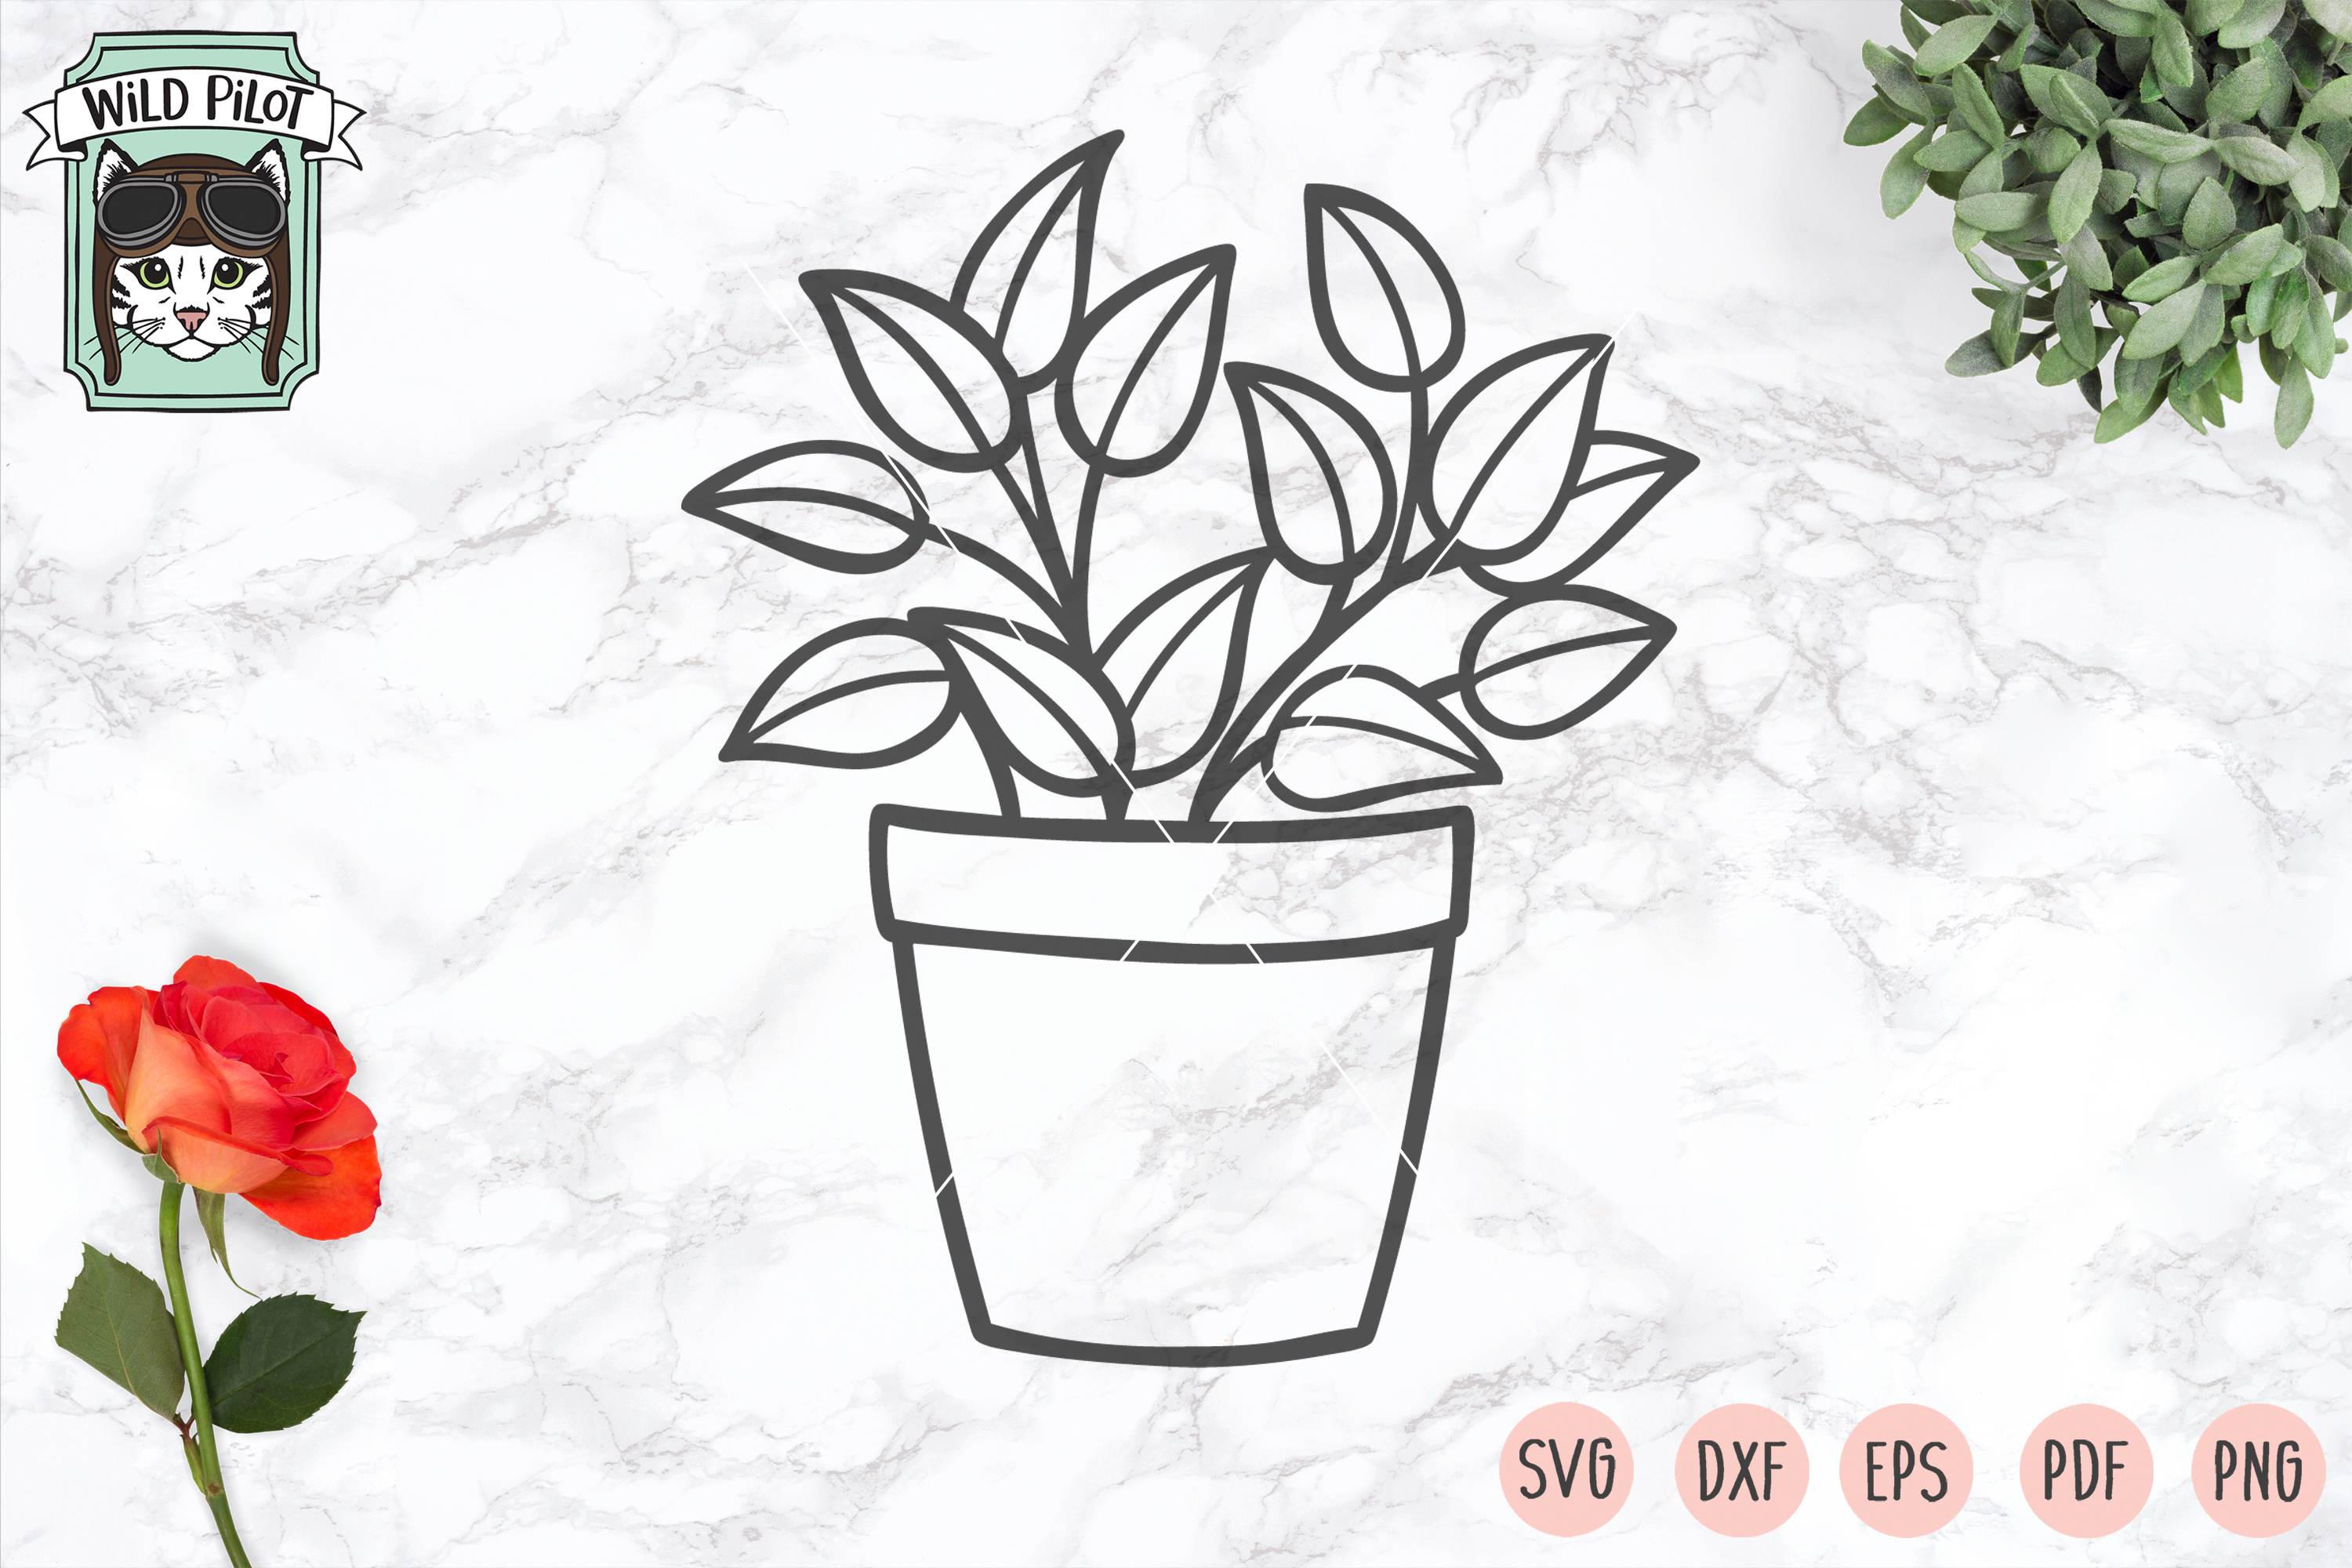 Plants SVG files, Potted Plants cut files, Planters, Garden example image 5